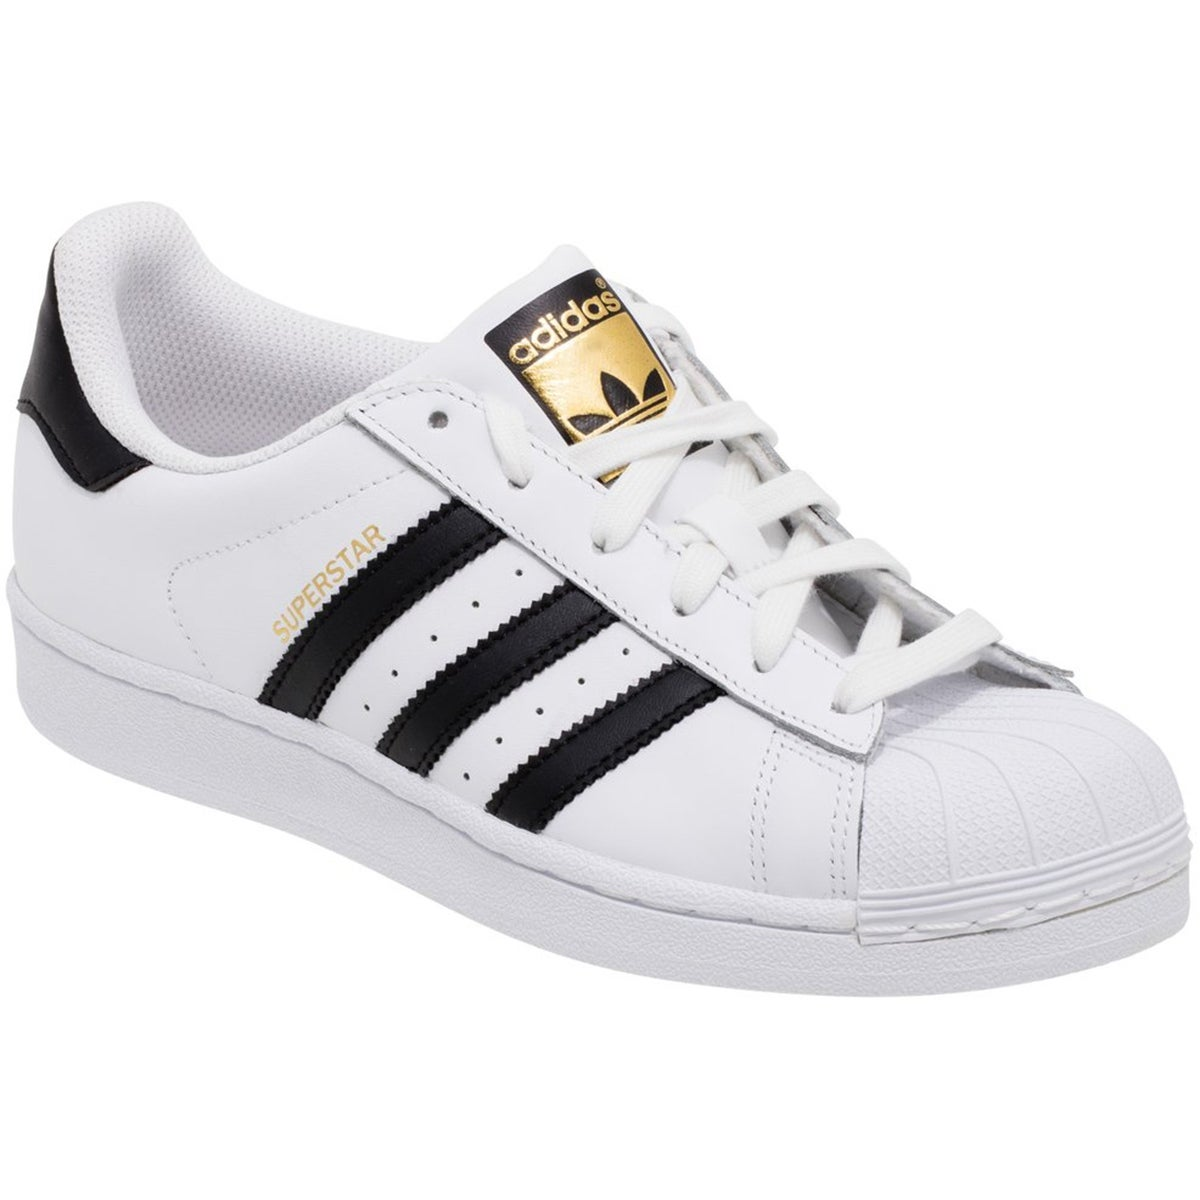 adidas shell shoes